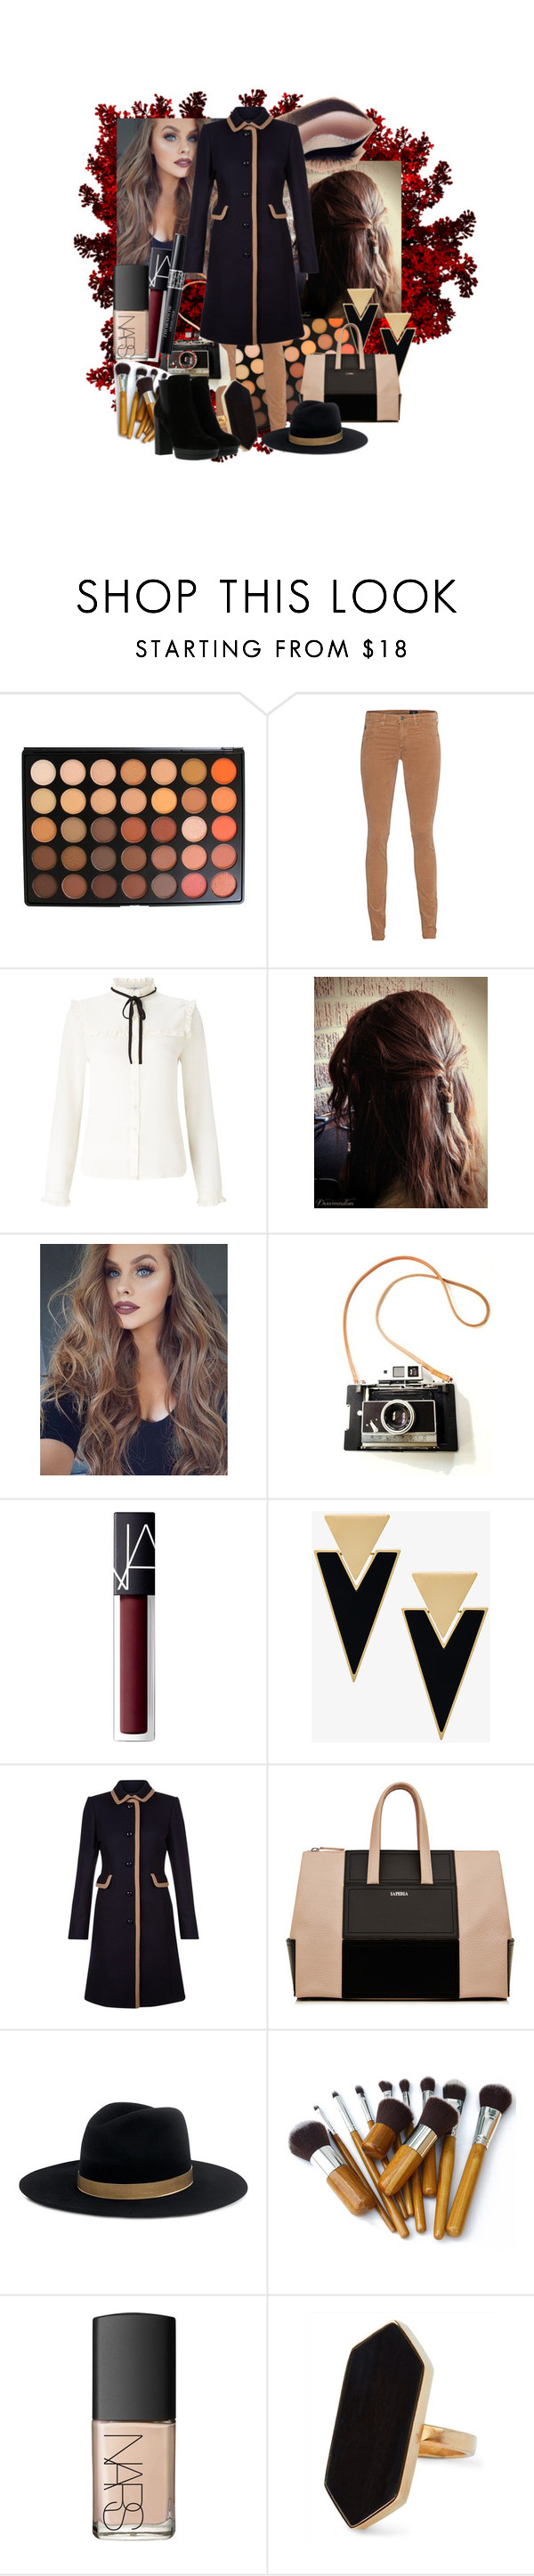 """""""Autumn"""" by arts22 on Polyvore featuring Mode, Morphe, AG Adriano Goldschmied, Lipsy, Christian Dior, NARS Cosmetics, Yves Saint Laurent, Hobbs, Janessa Leone und Jaeger"""